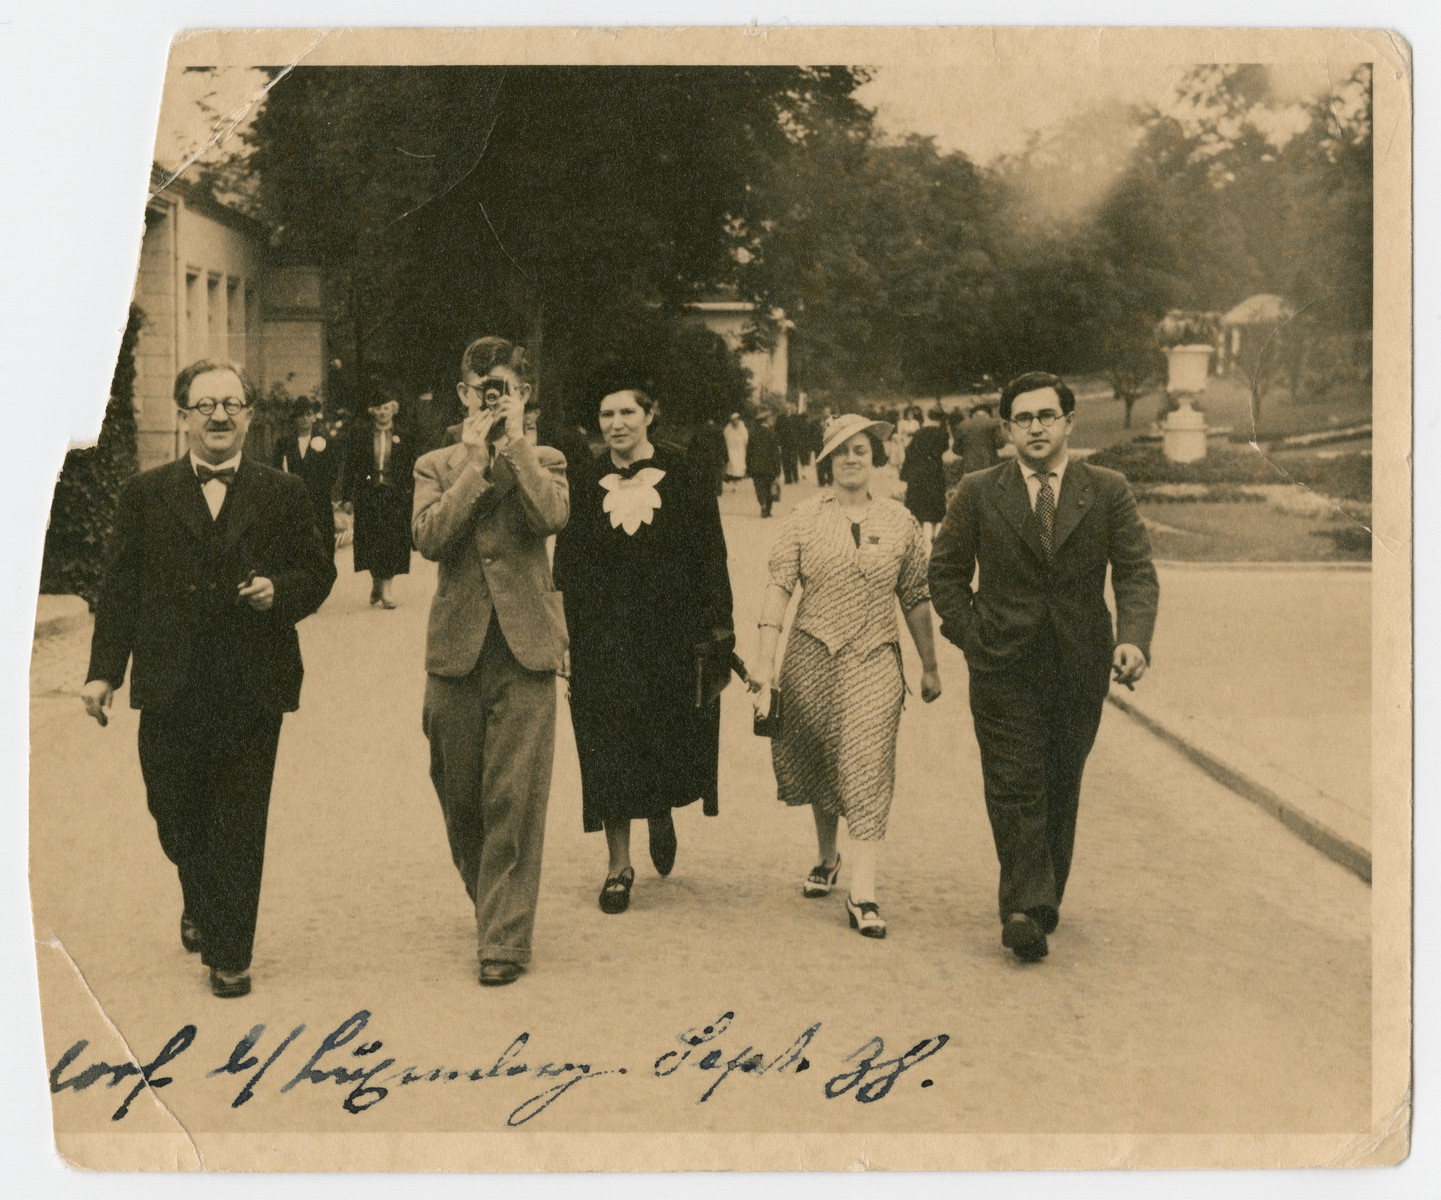 A German-Jewish family walks down a street in Luxembourg.  Norbert Isenberg (with camera) walks between his parents Sally and Erna. His brother Artur and an unidentifed woman, likely Hildegard Suesskind, are pictured at right.